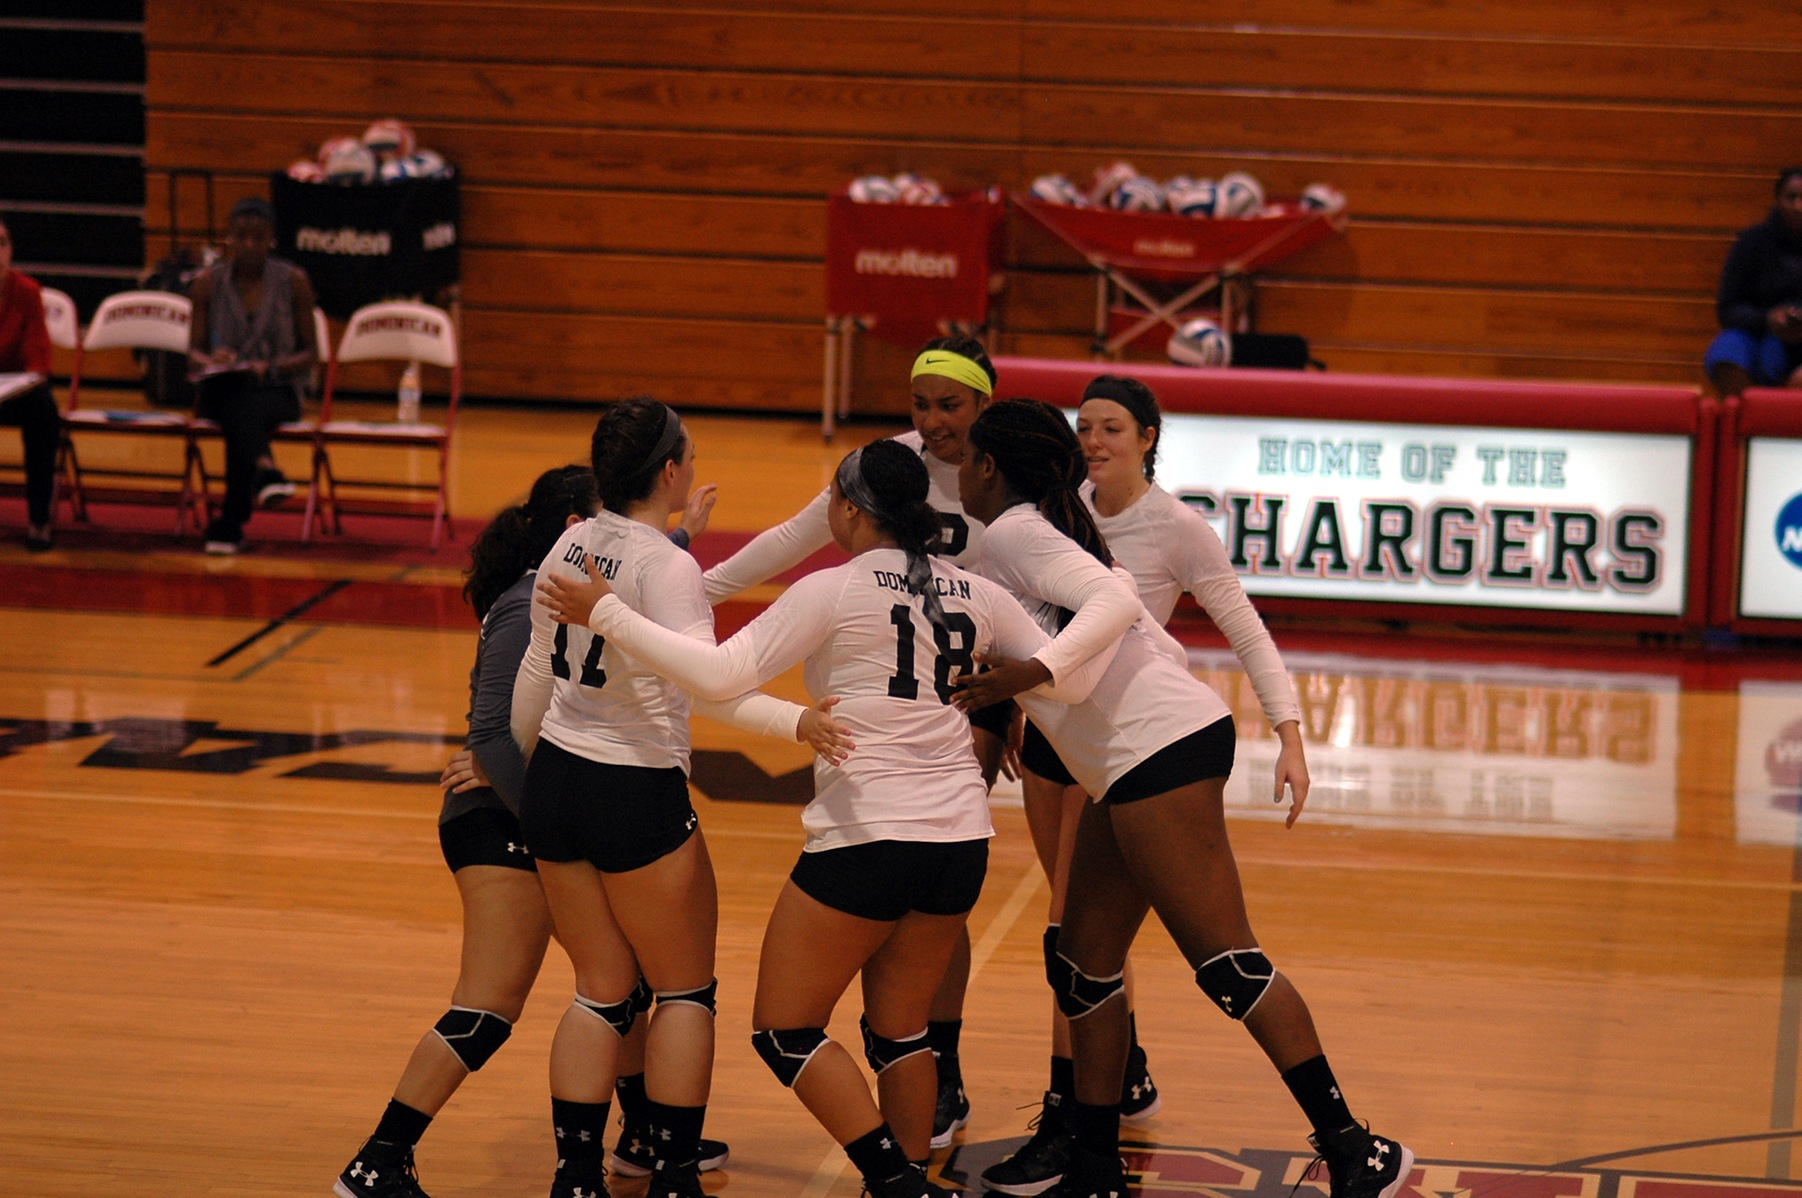 GRIFFINS OUTLAST LADY CHARGERS